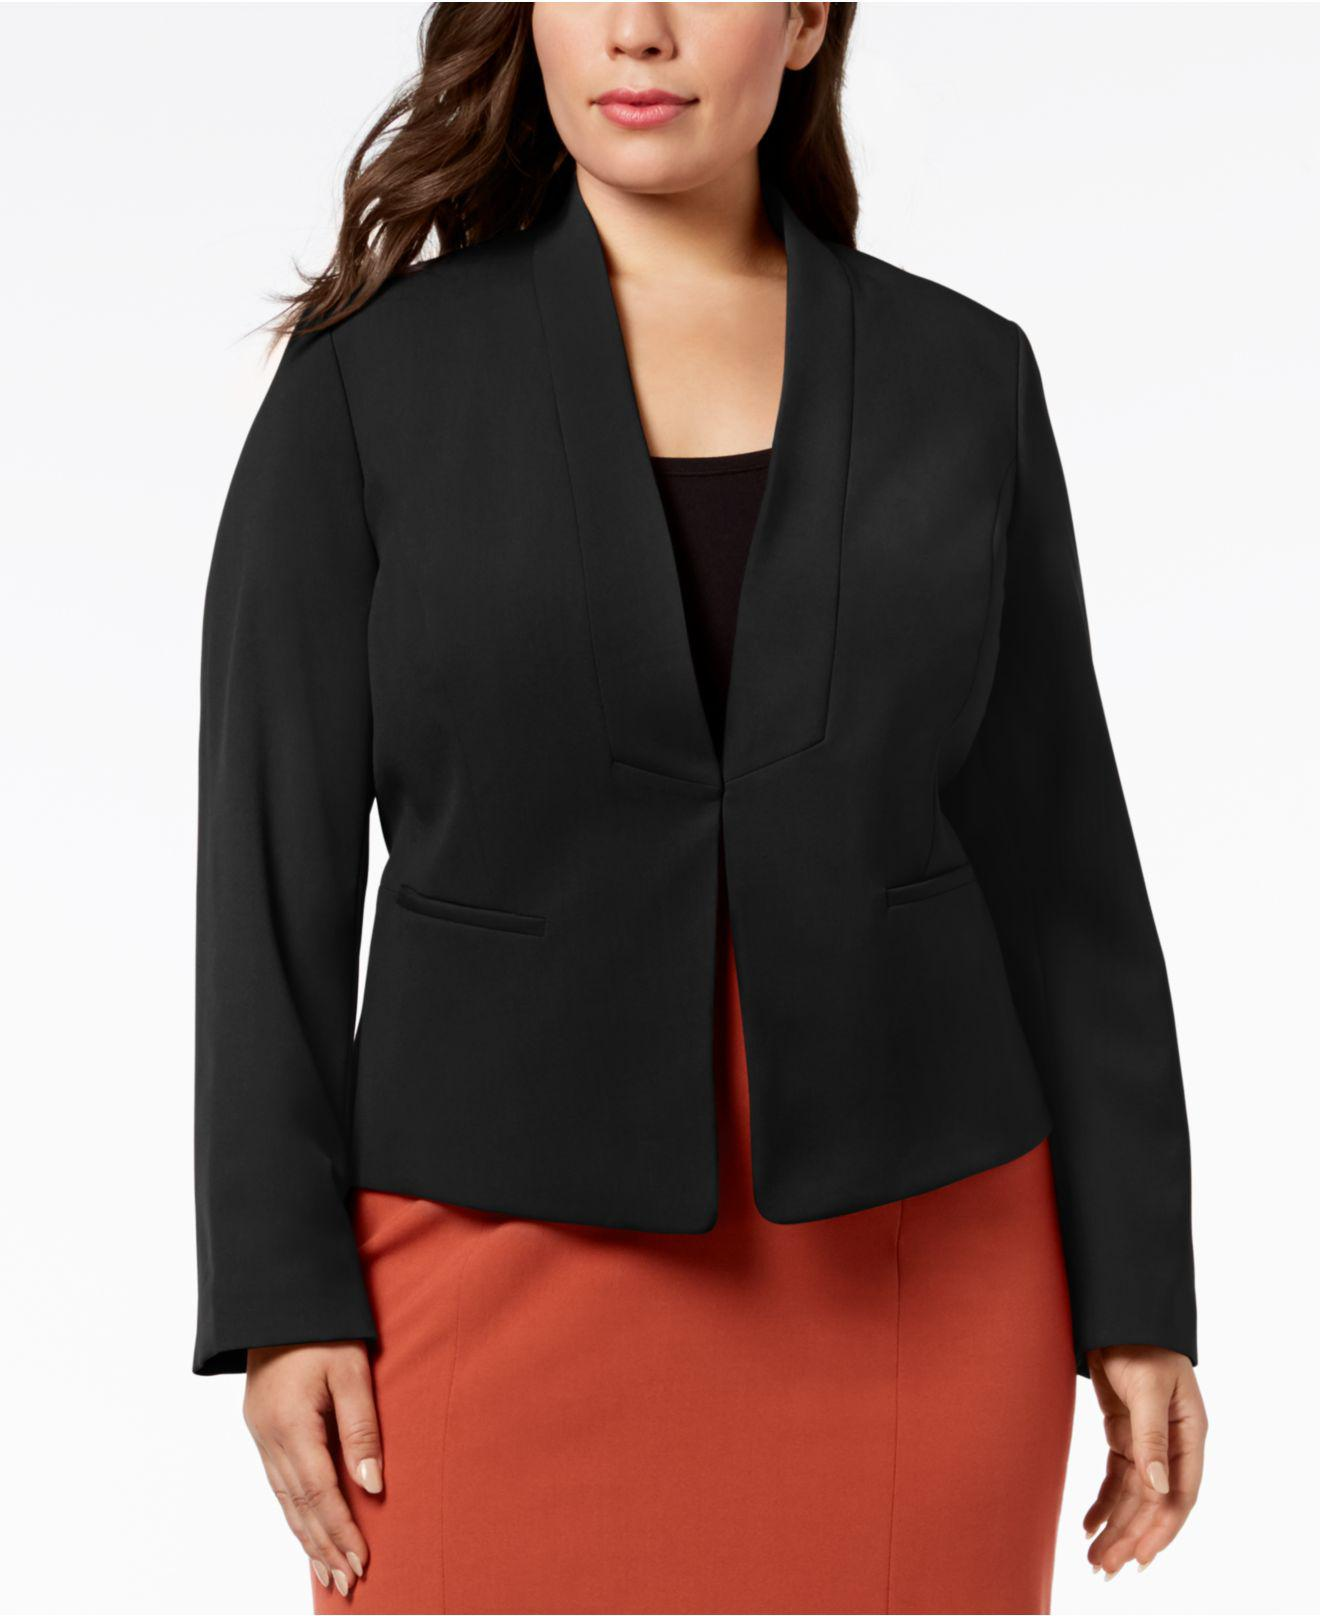 23b5b8a7139 Lyst - Nine West Plus Size Stand-collar Jacket in Black